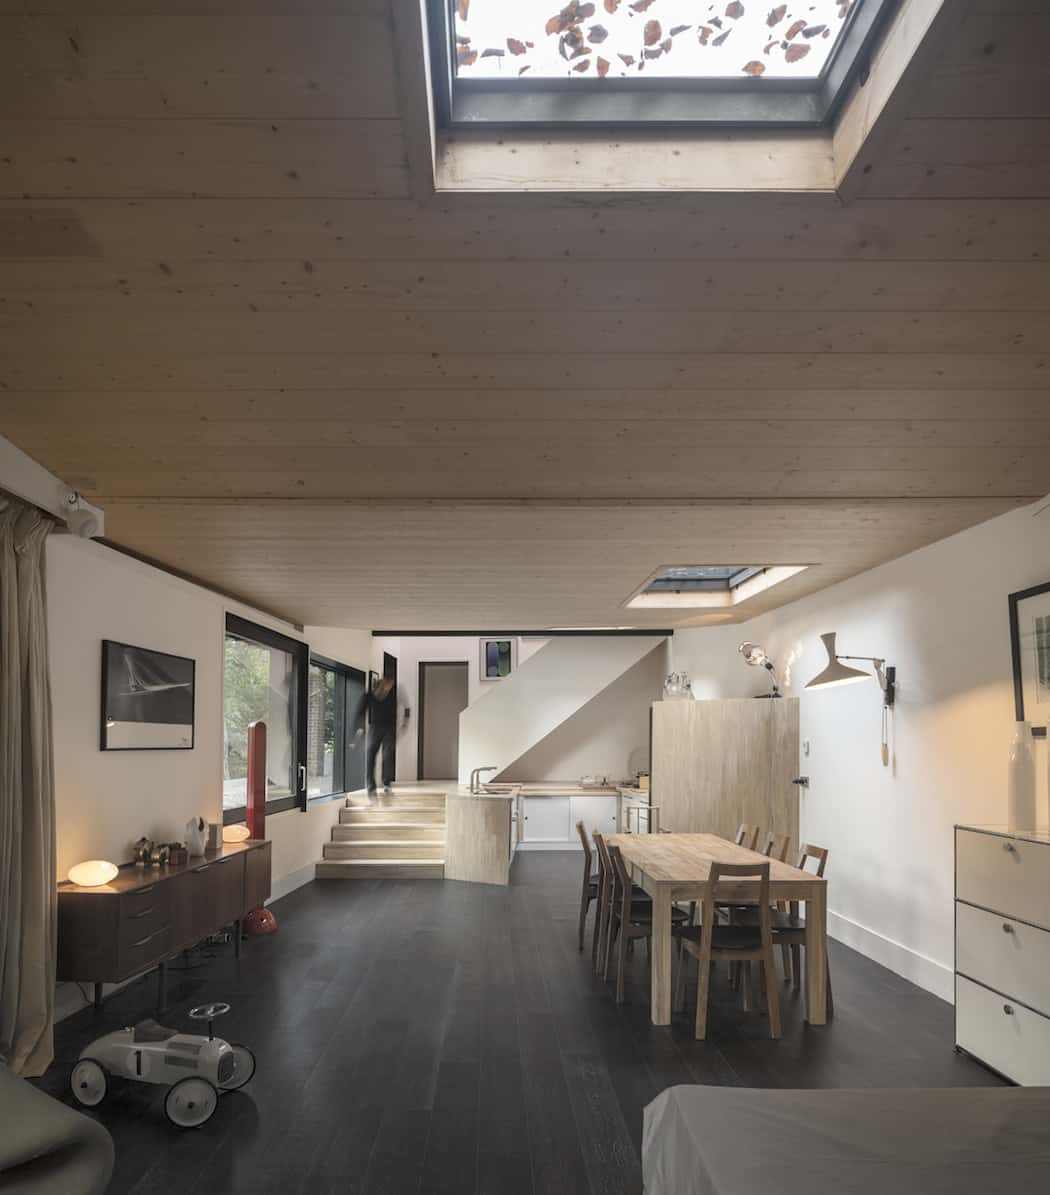 Marchi_BlackHouse_Enchanting_Timber_Home_Nestled_in_The Forests of Normandy01-1050x742 (8)